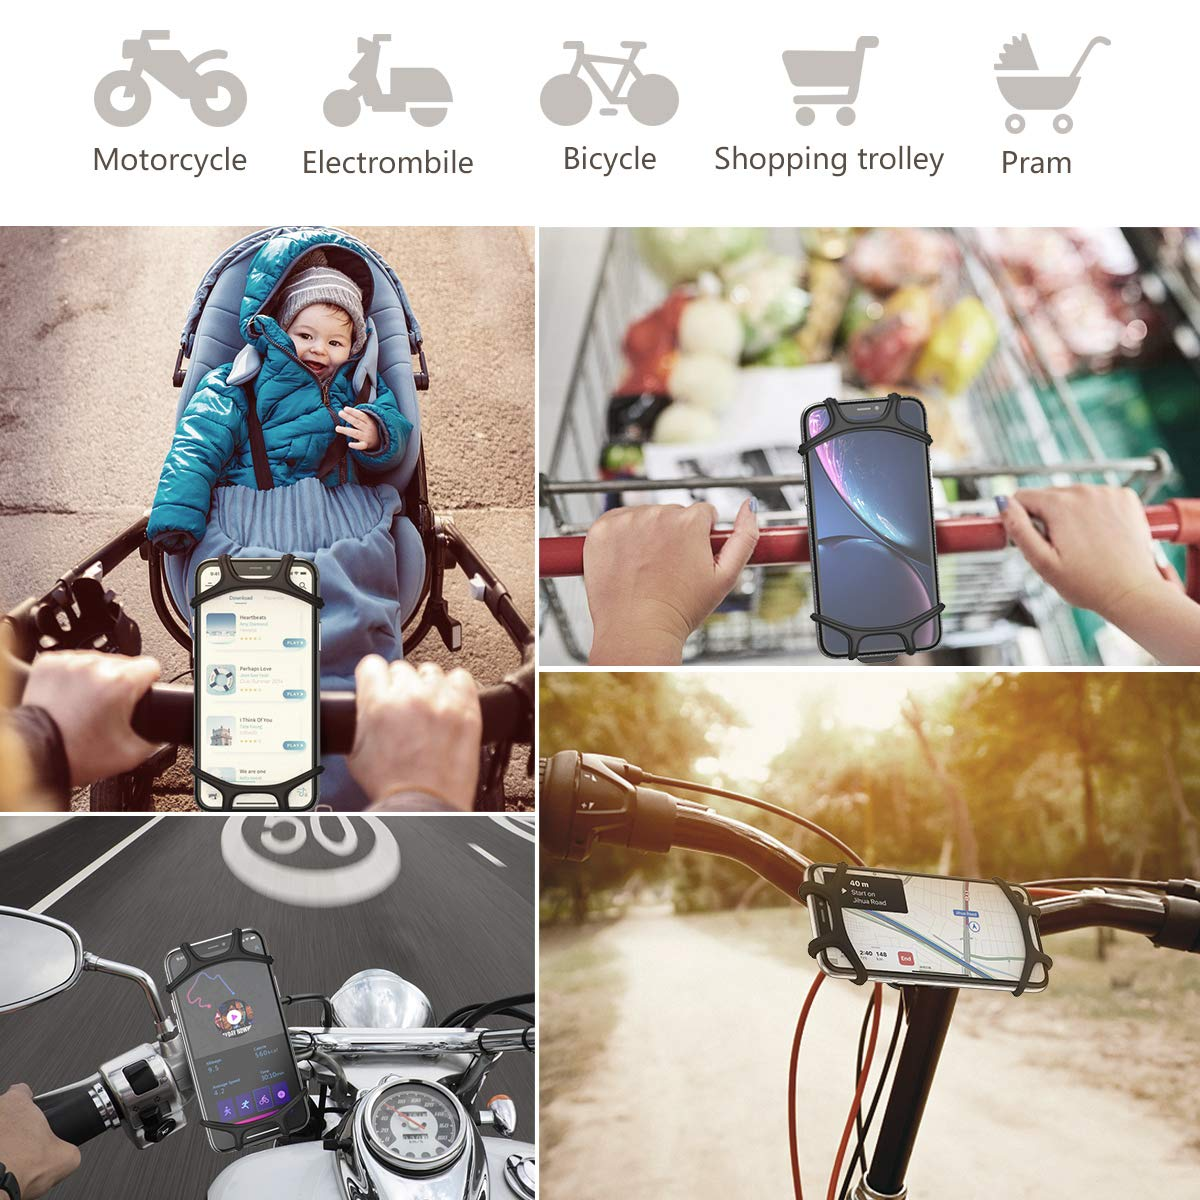 Universal Adjustable Handlebar Mobile Phone Seat Suitable for Mountain Bike//Motorcycle//Stroller//Shopping Cart//Treadmill//Electric Bicycle Supports 4.5-6 Inch Smartphone Use CTXTKER Bike Phone Mount